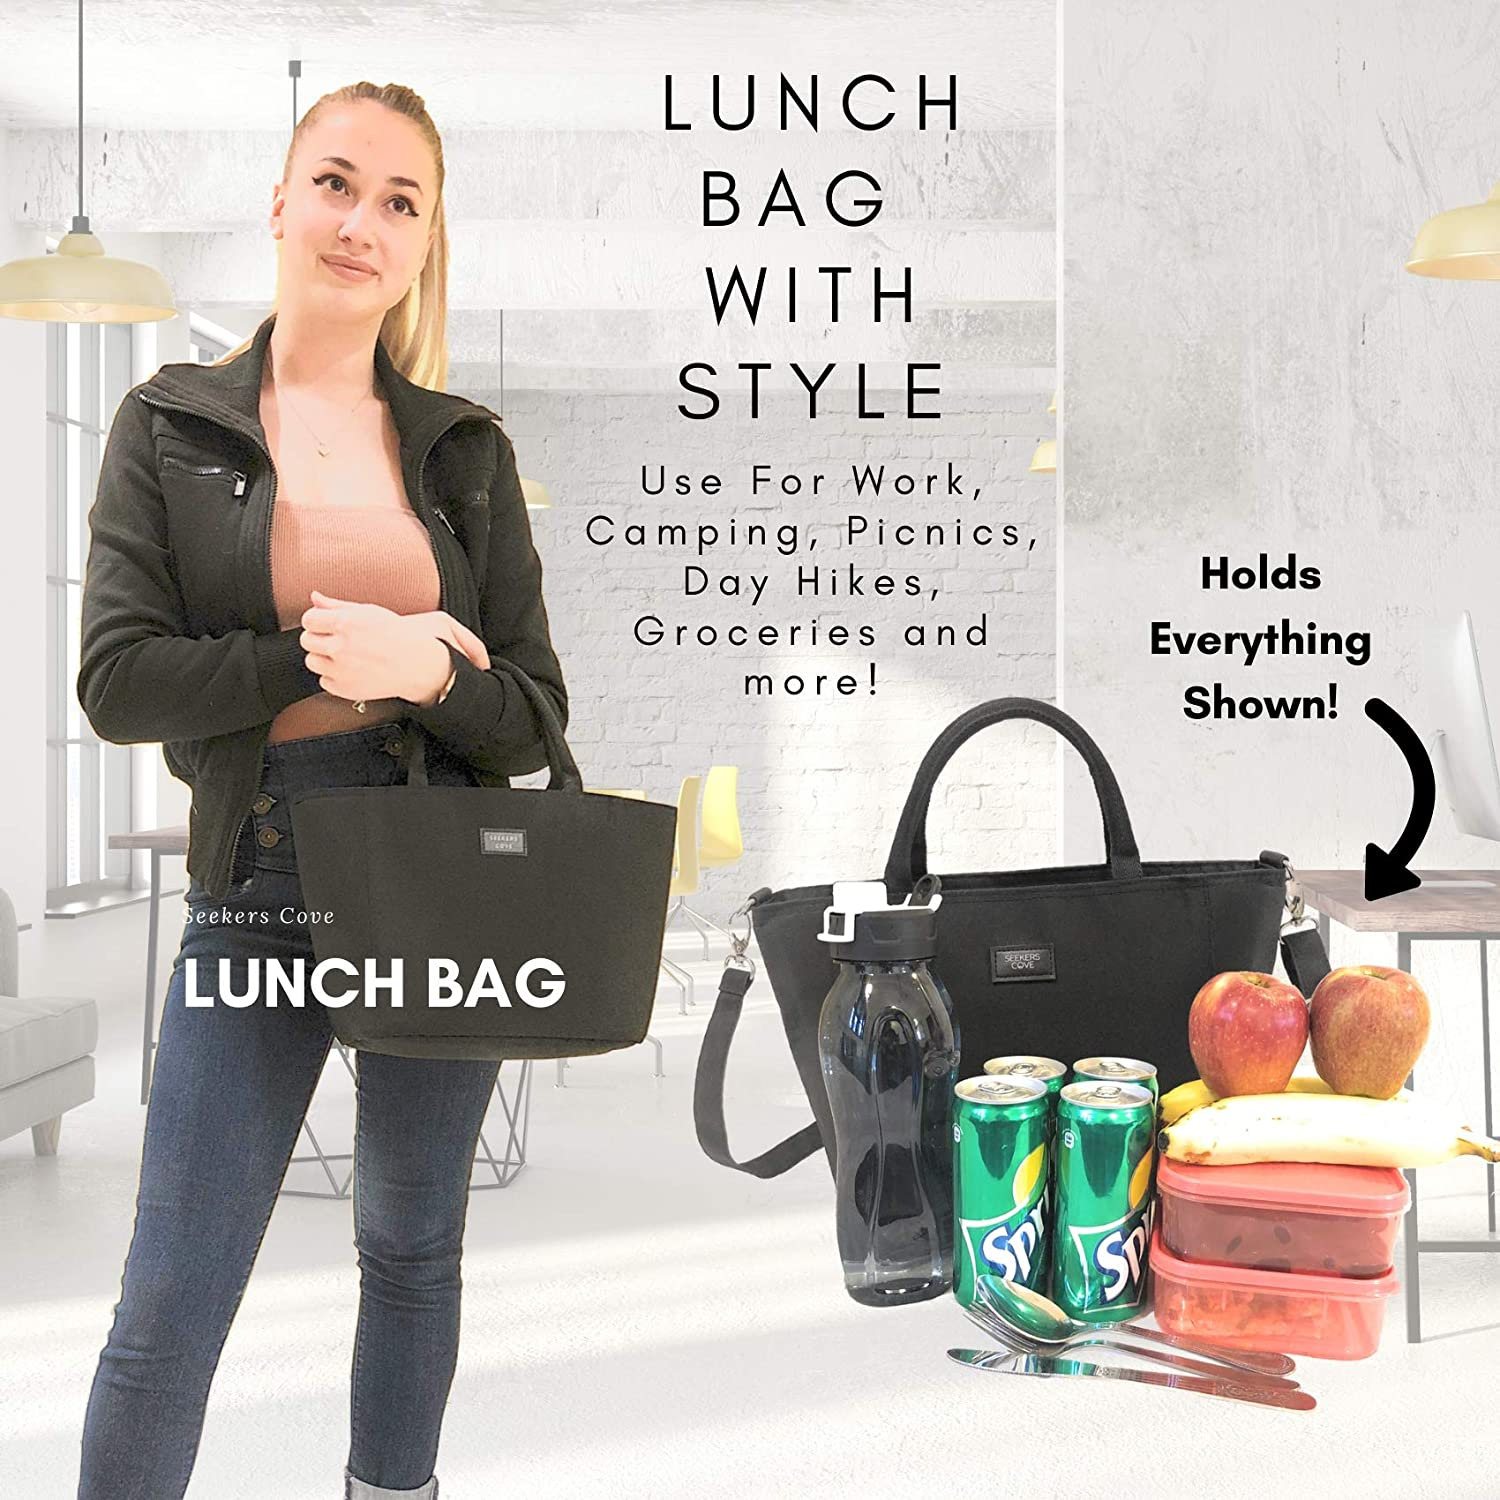 Black Quality 8L Lunch Tote Adjustable Strap Purse Style Lunch Bag with Side Pocket | Womens Lunch Bag by SEEKERS COVE with Shoulder Strap for Work School 5mm Thick Insulation